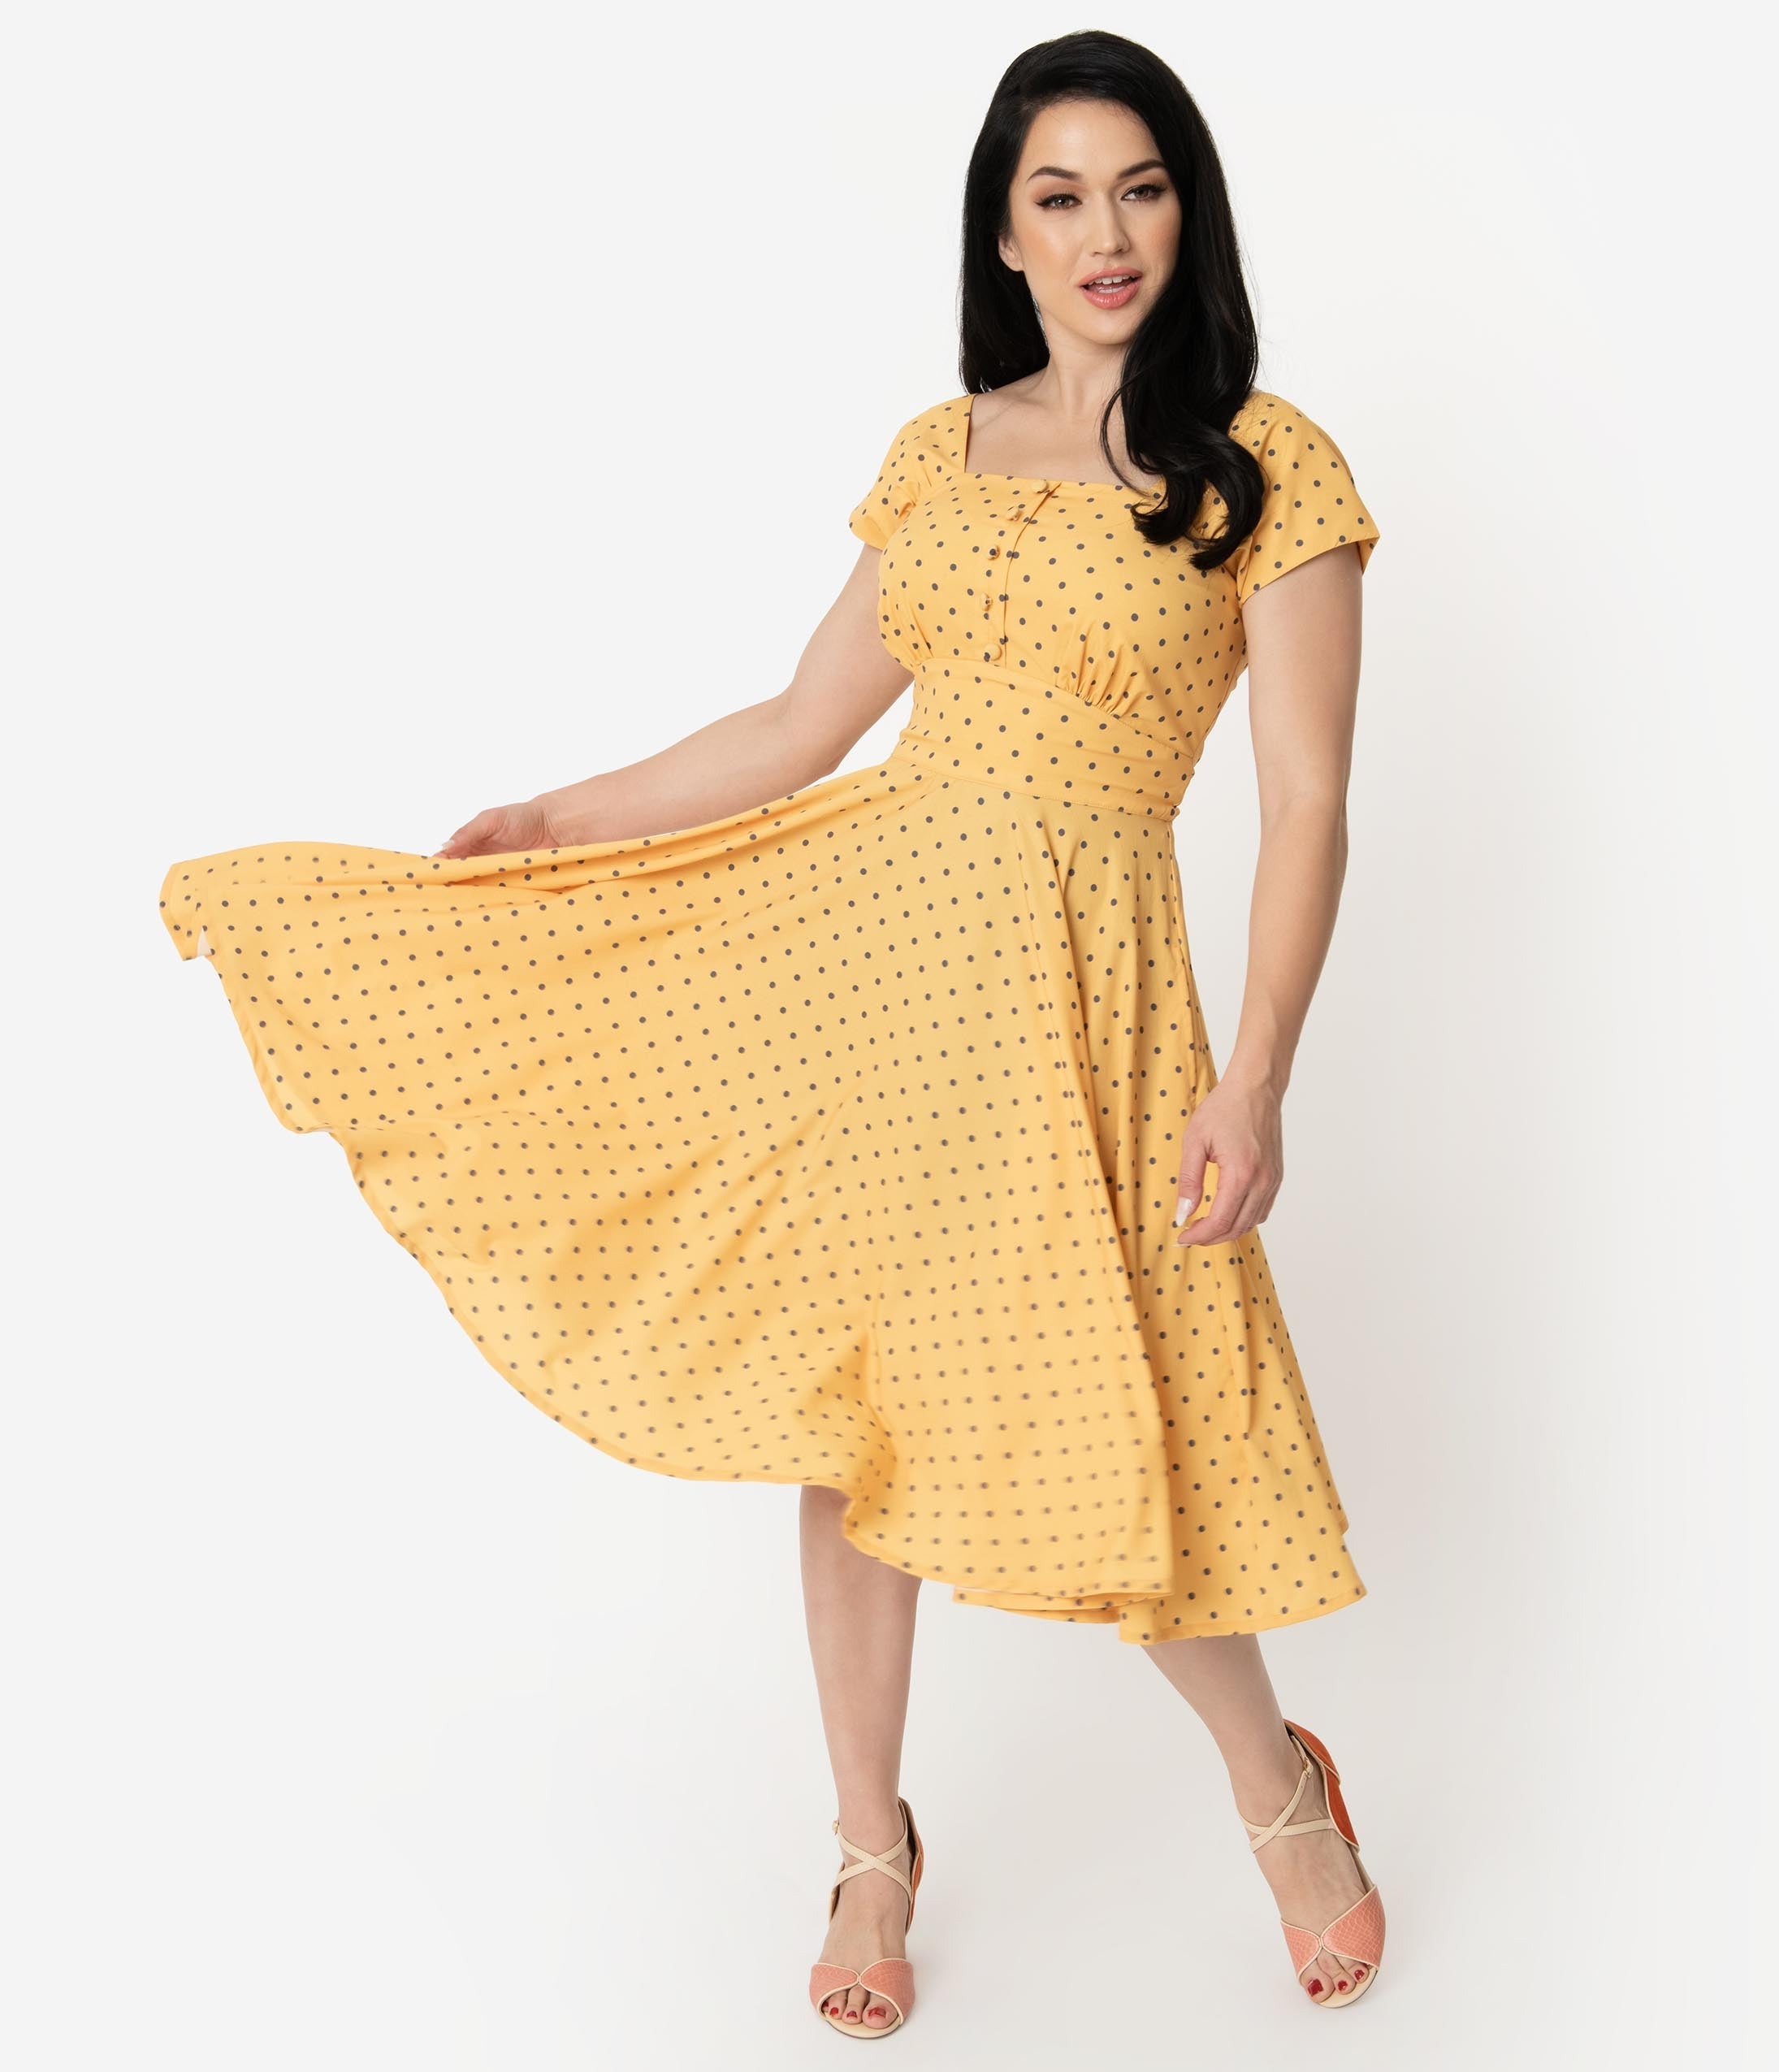 Swing Dance Clothing You Can Dance In 1940S Style Yellow  Grey Polka Dot Cap Sleeve Zafira Swing Dress $72.00 AT vintagedancer.com